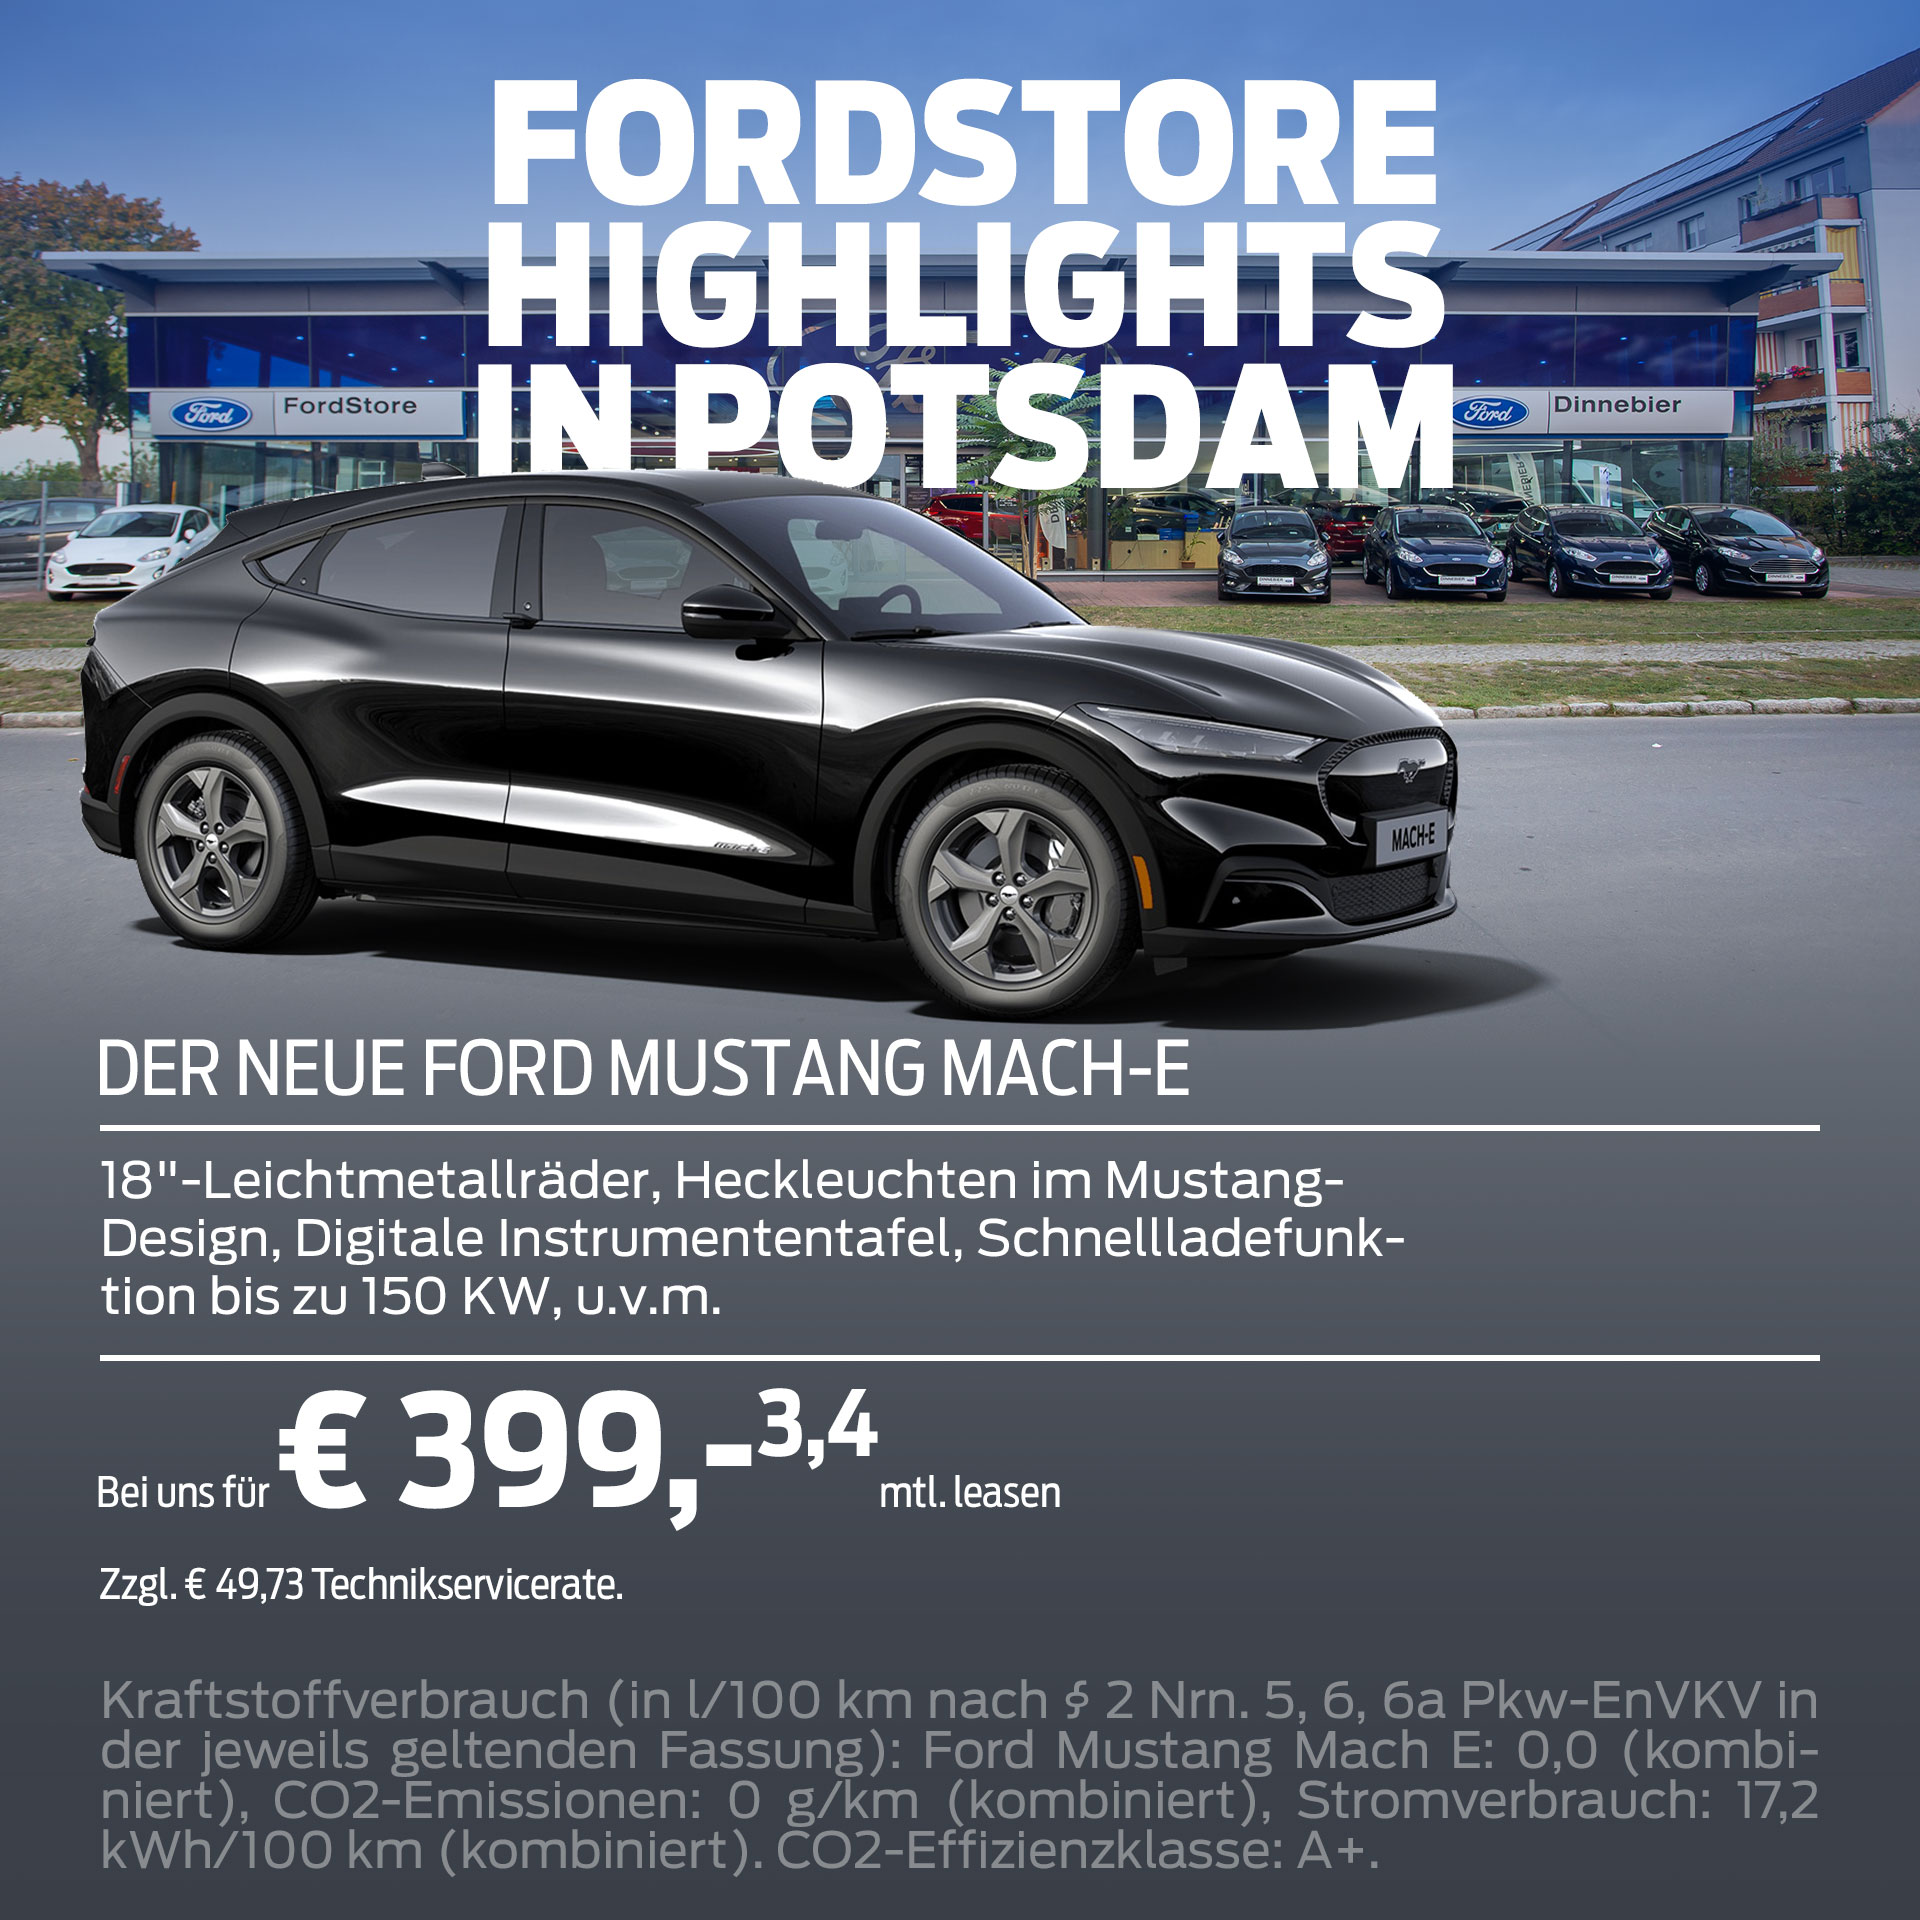 FordStore Potsdam – Ford Mustang Mach-e